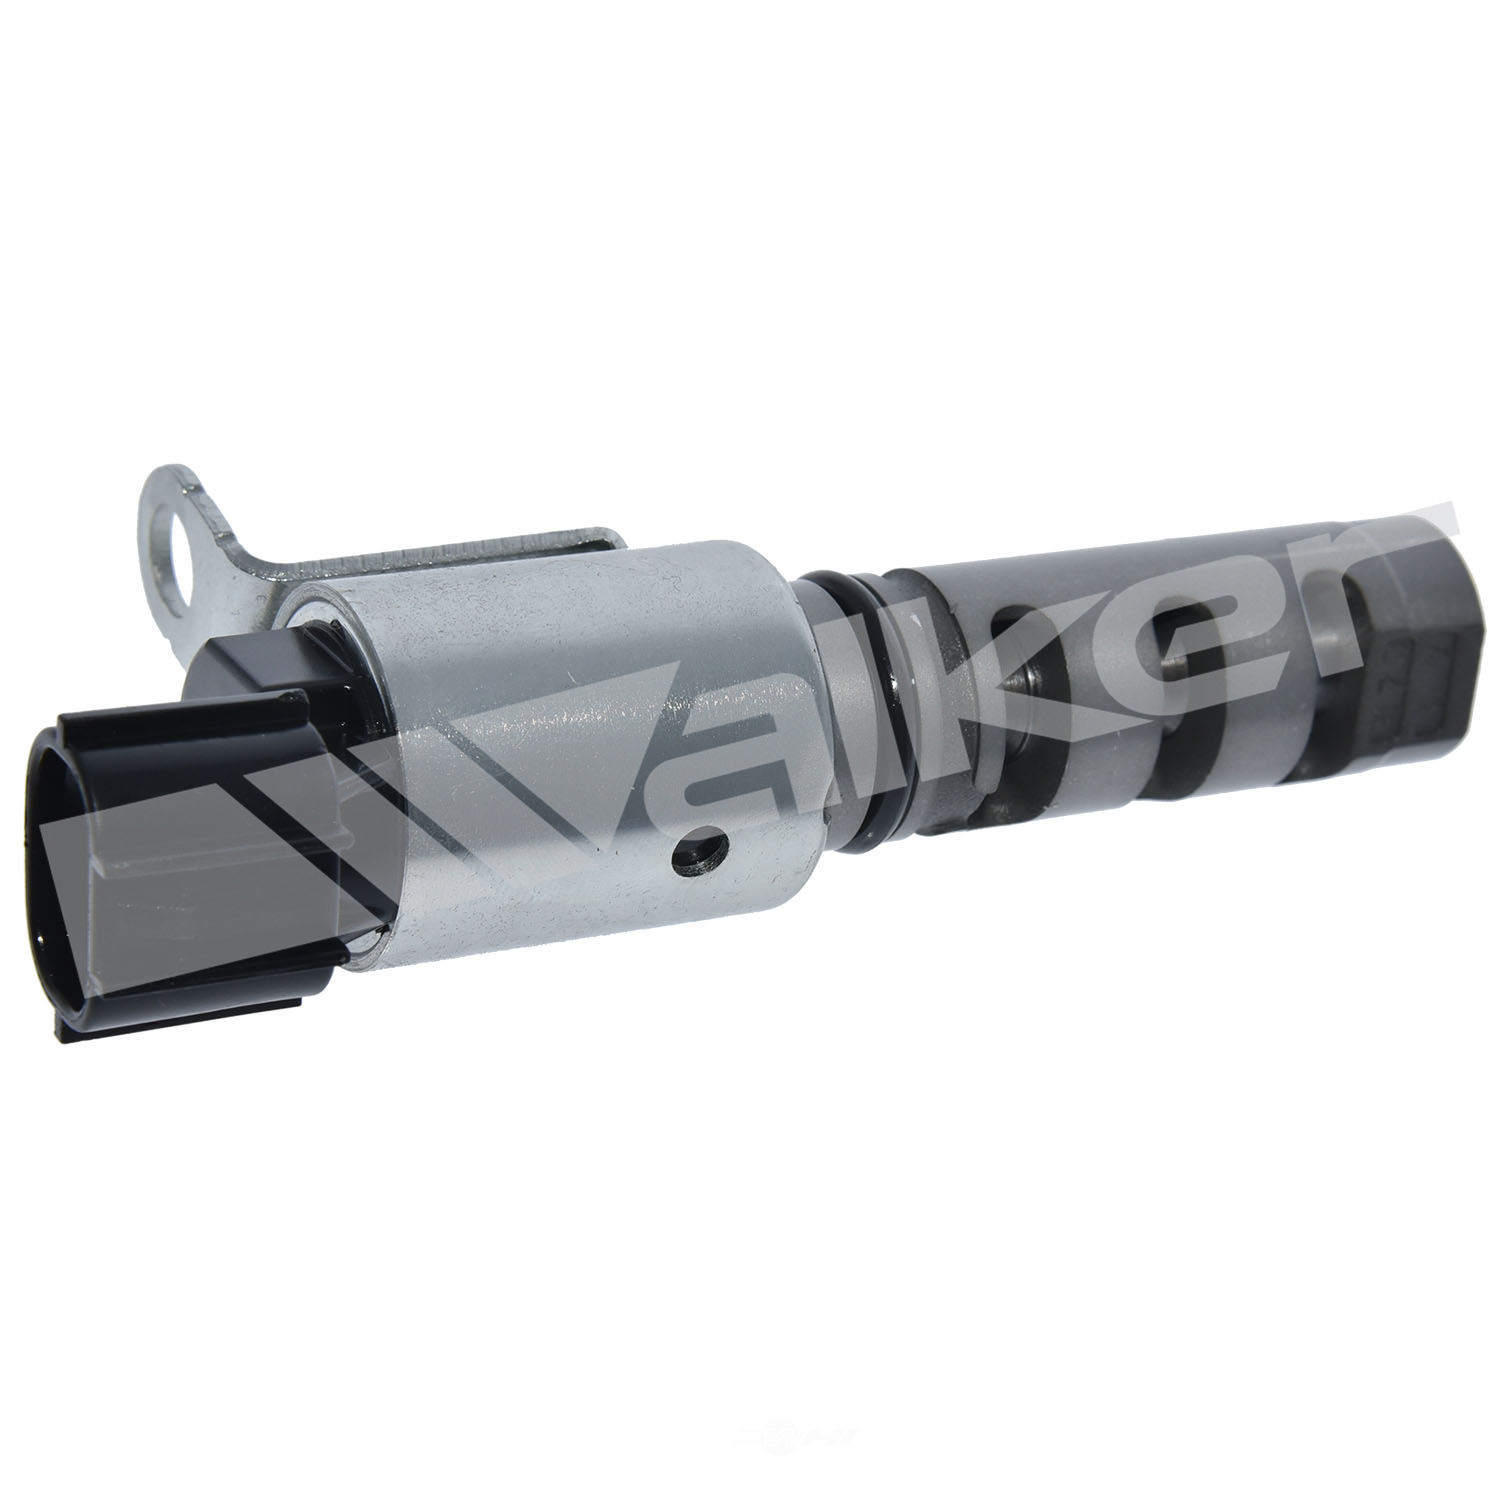 WALKER PRODUCTS, INC. - Engine Variable Valve Timing(VVT) Solenoid (Exhaust) - WPI 590-1027